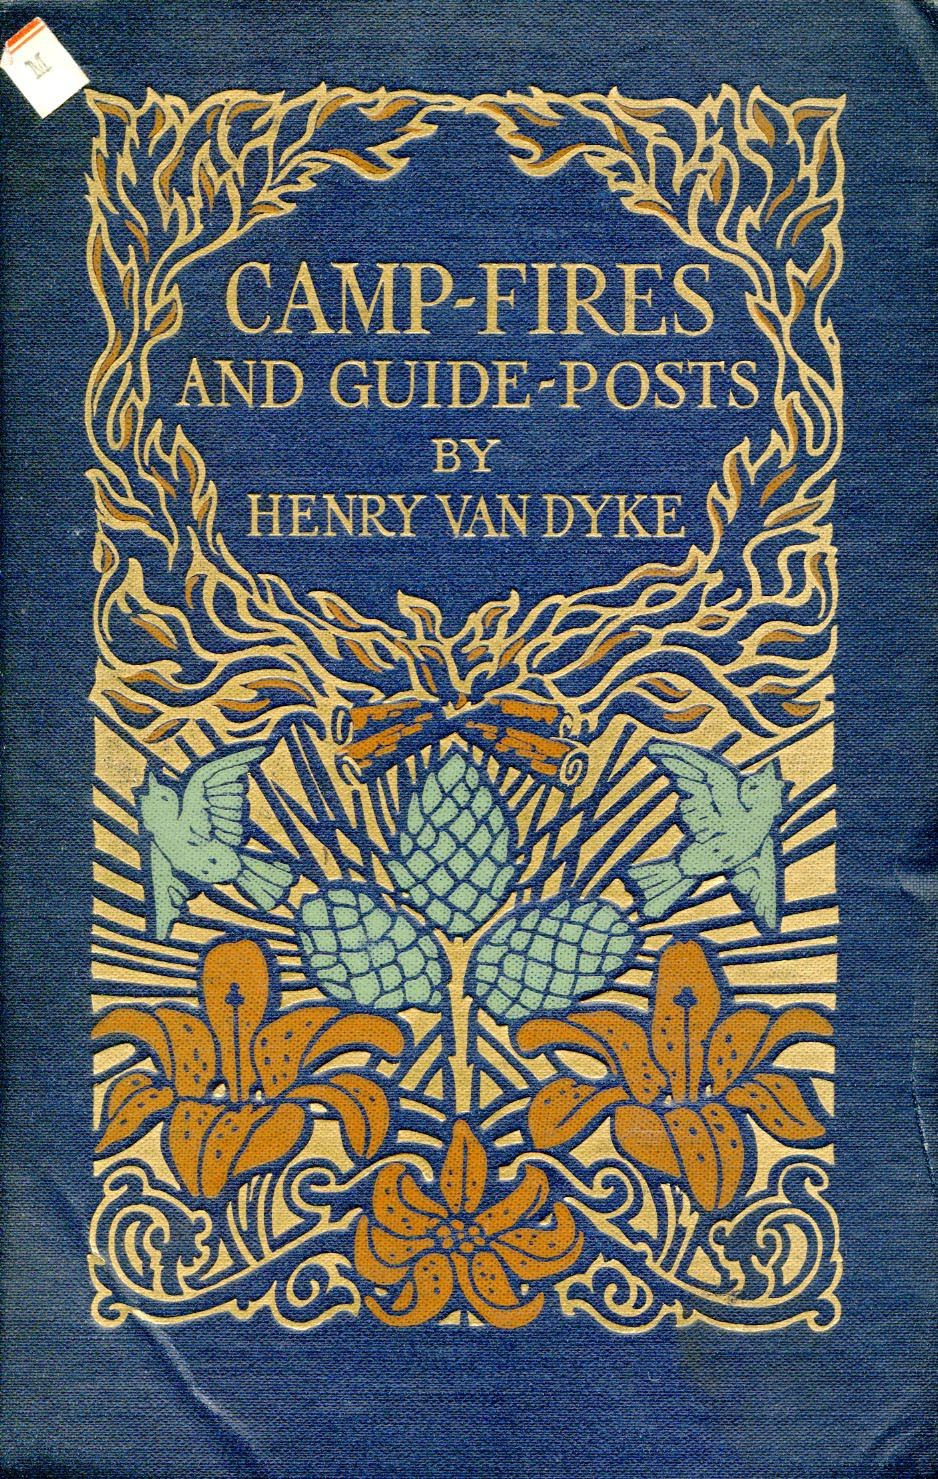 Beautiful Classic Book Covers : Vintage book covers imgkid the image kid has it